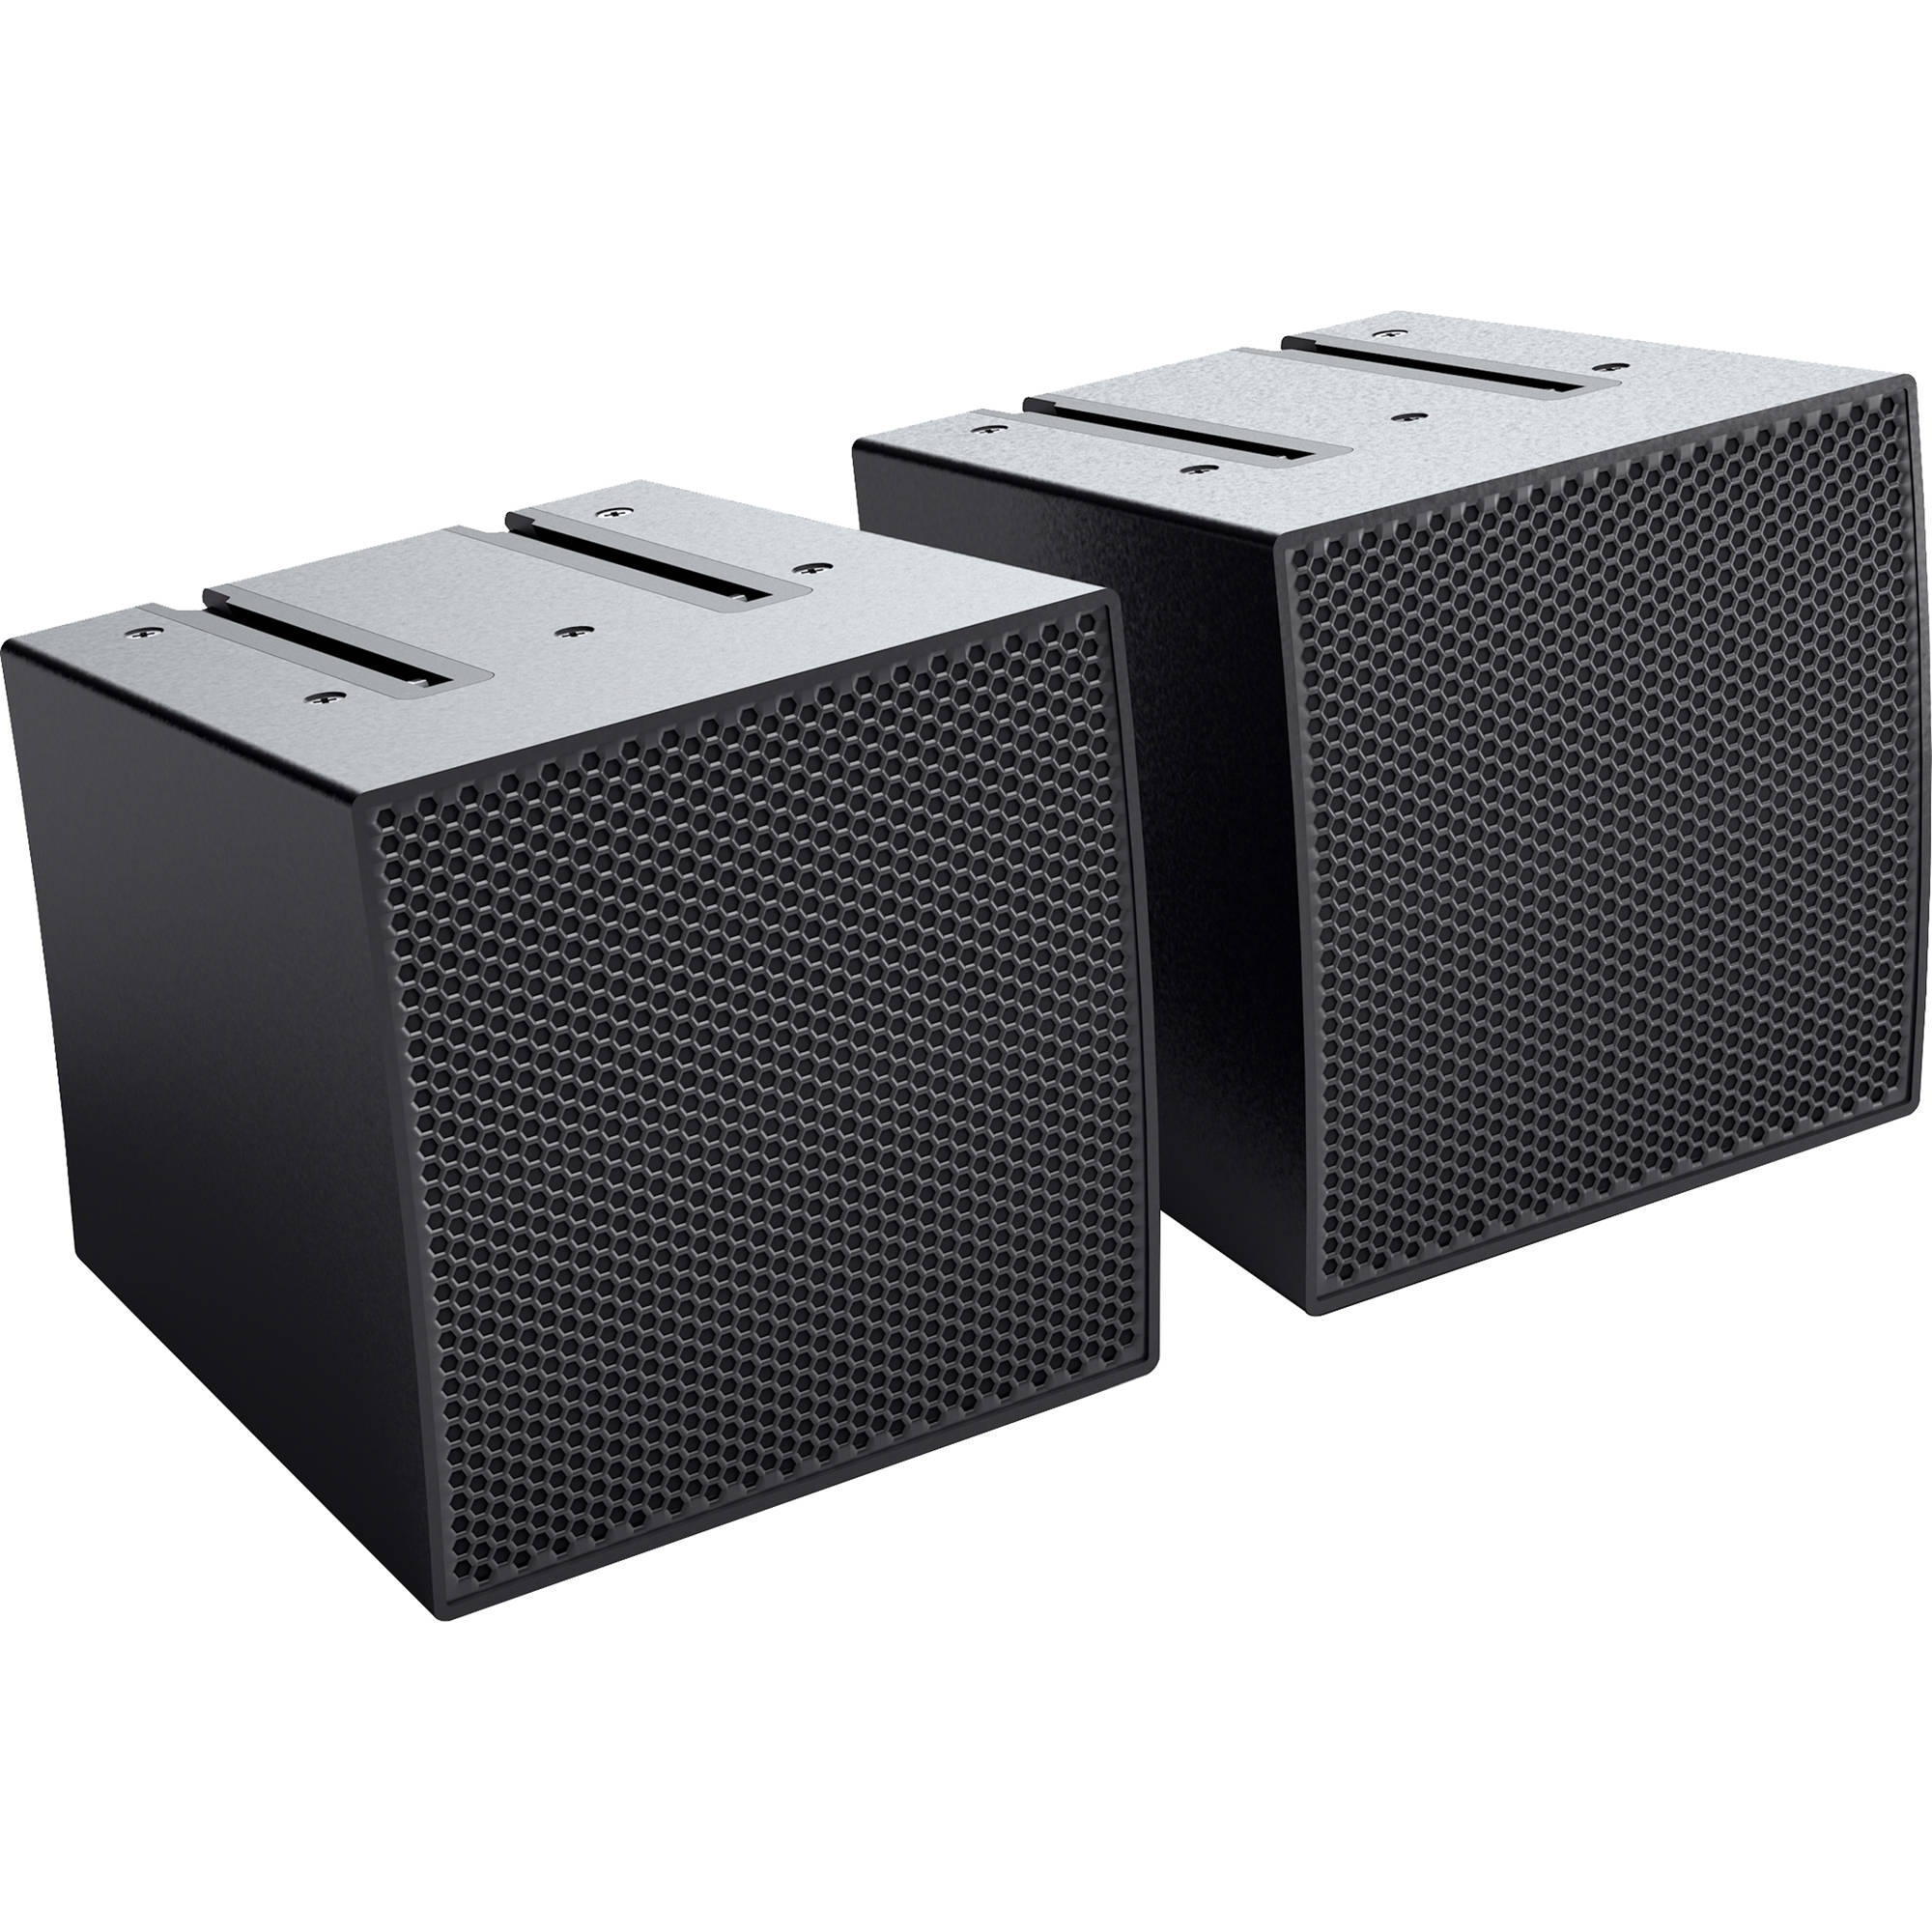 LD Systems CURV 500 S2 Two Array Satellites for CURV 500 Portable Array  System (Black)